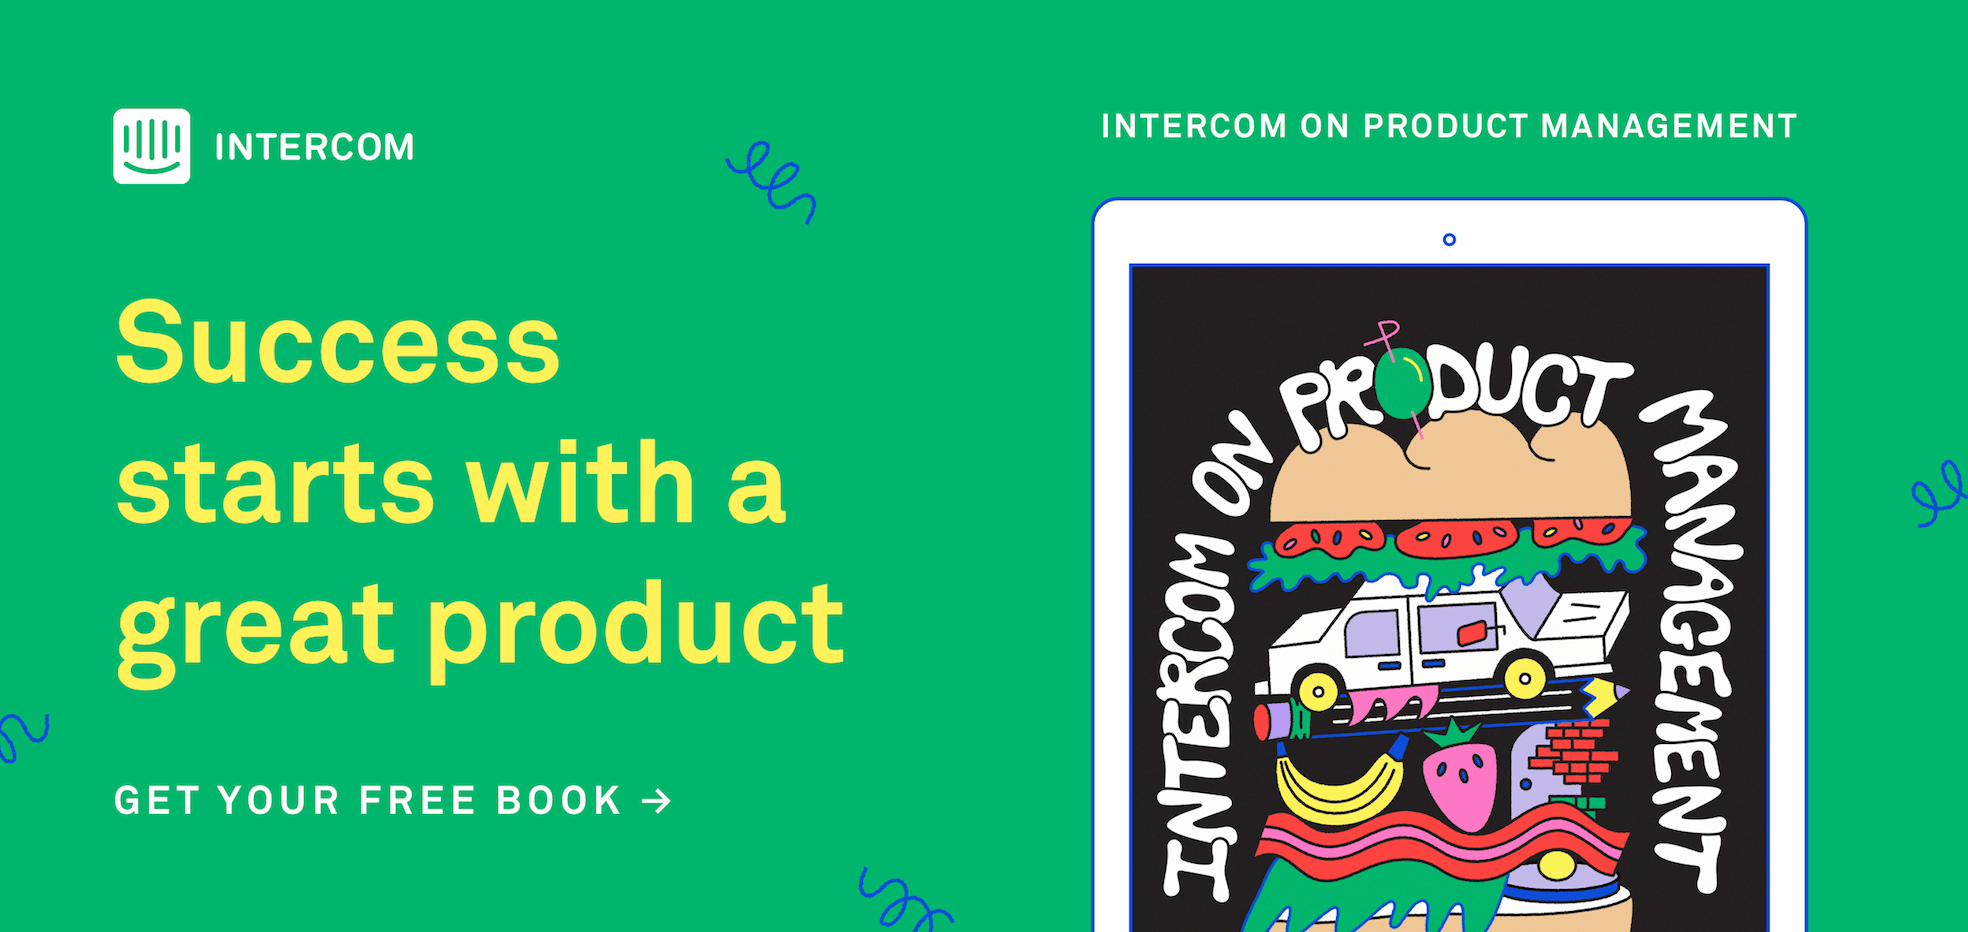 Intercom on Product Management book